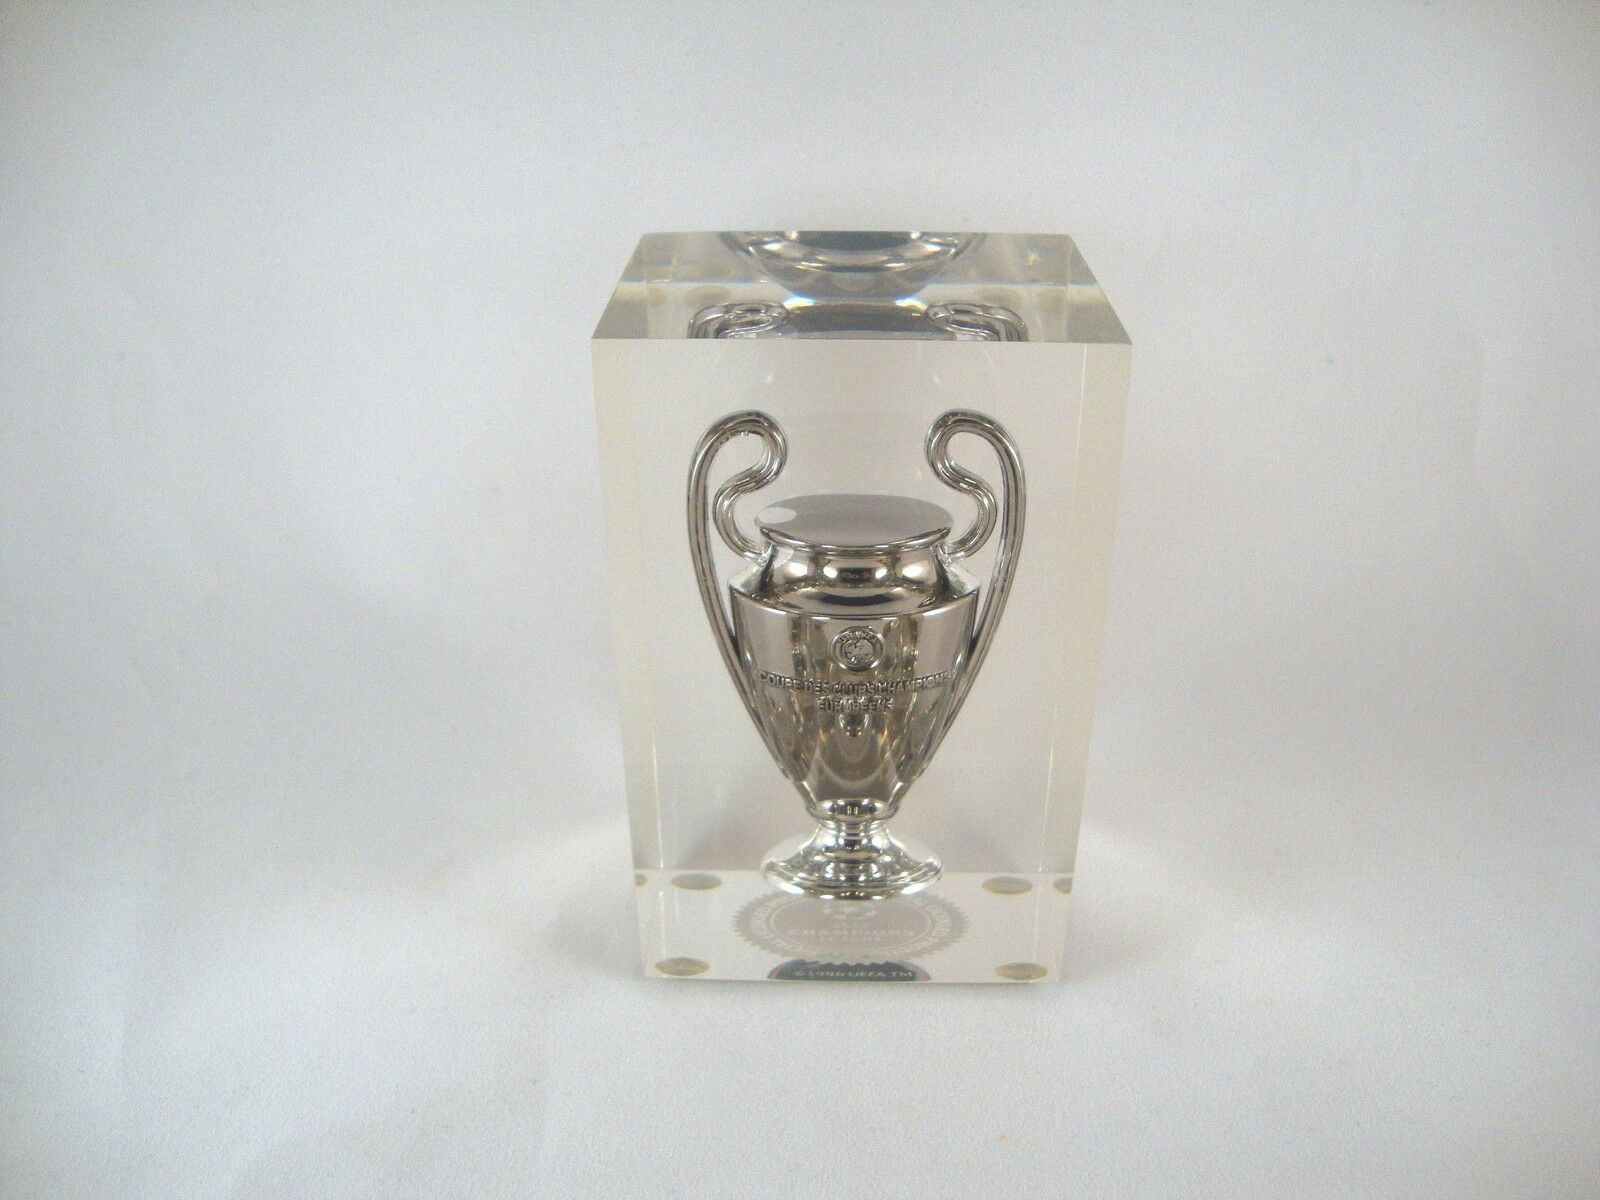 UEFA-Champions UEFA-Champions UEFA-Champions League tm Pokal 70mm in Acryl Trophy Copa CL Madrid dcd402